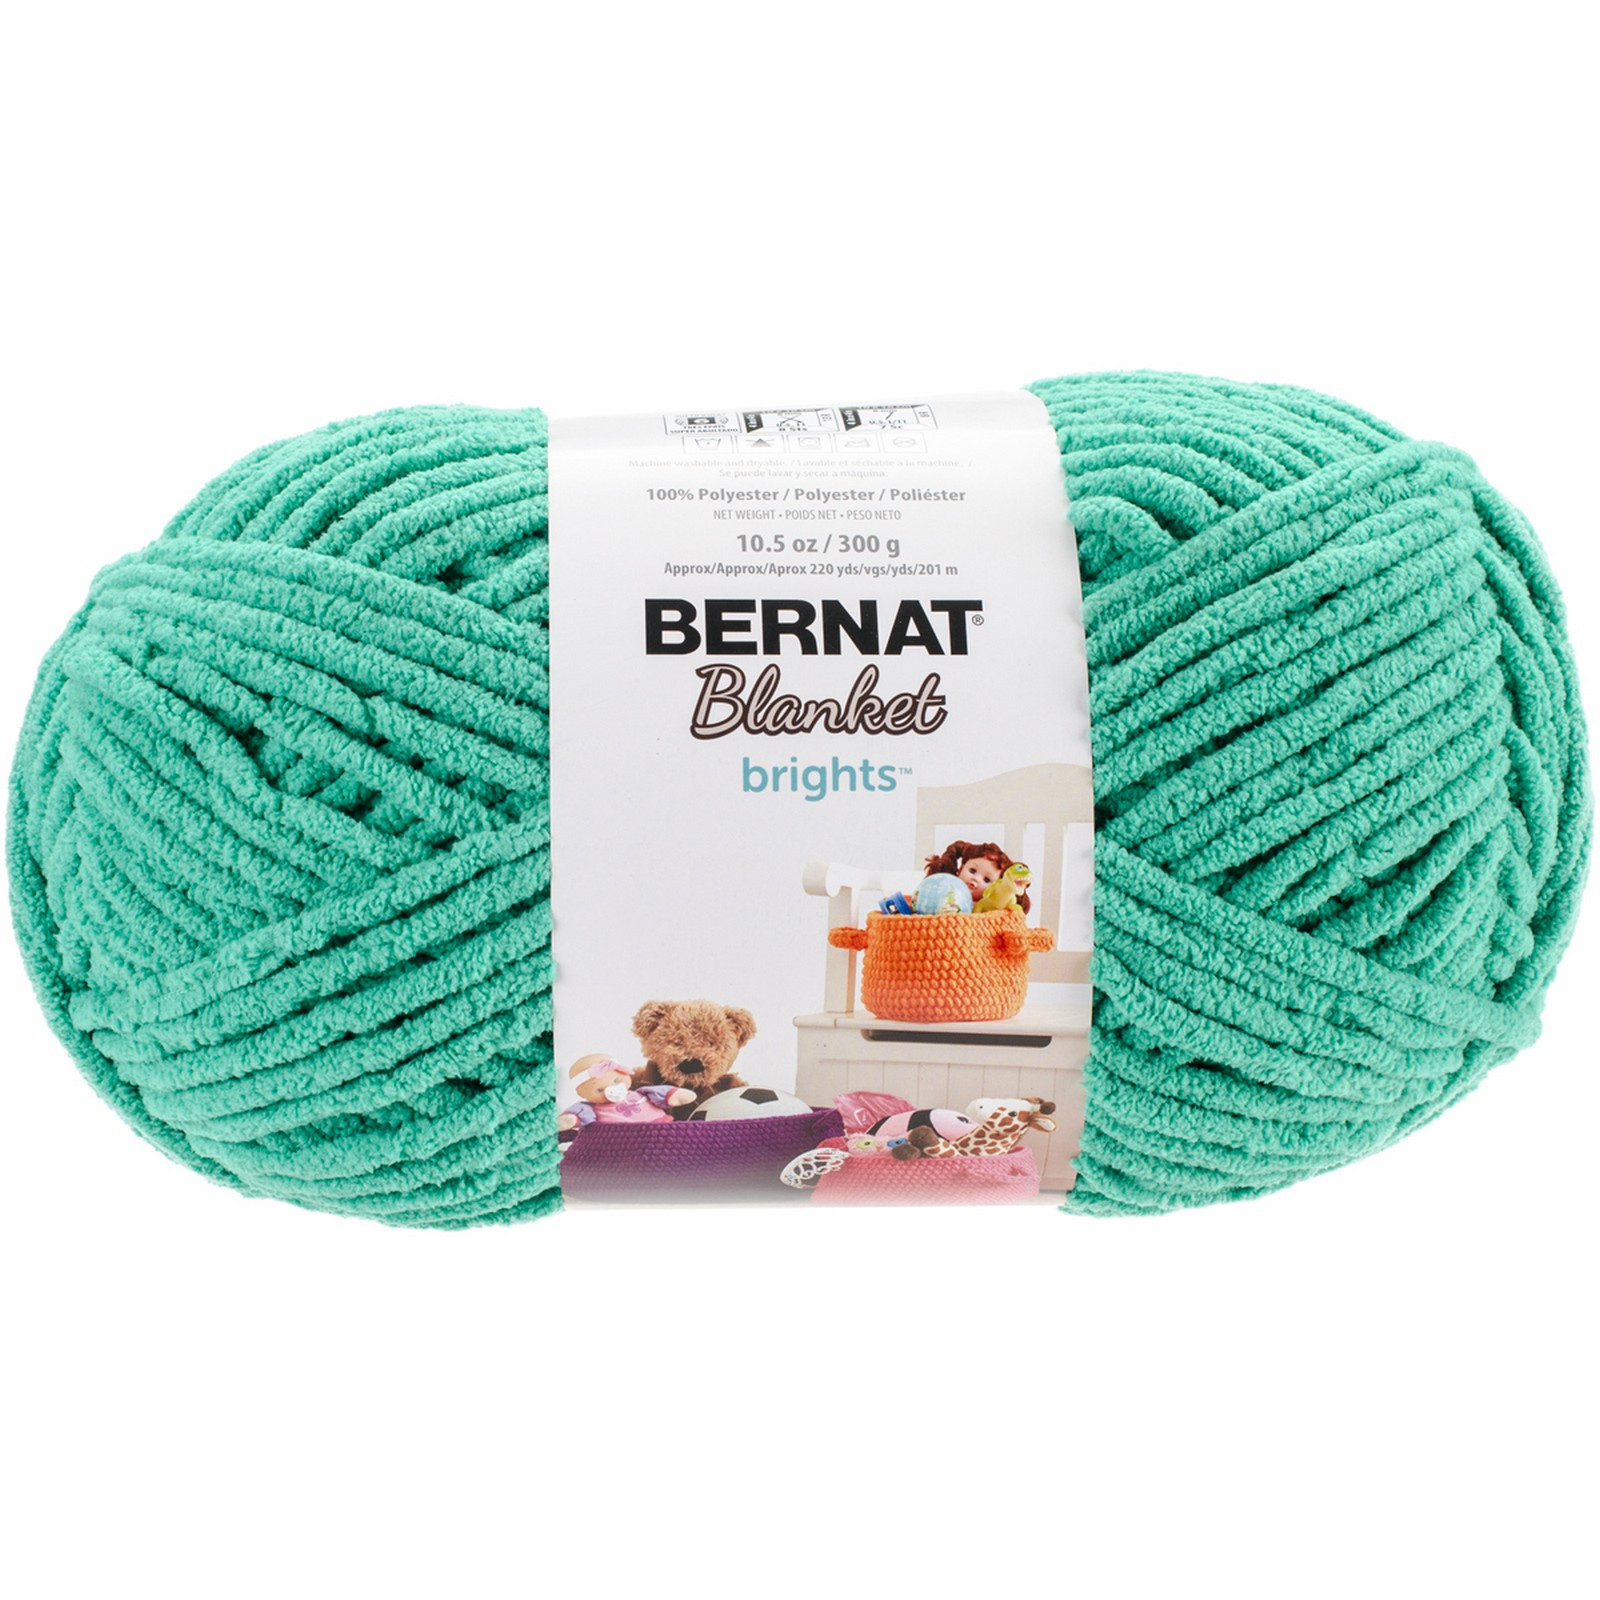 Bernat Blanket Brights Big Ball Yarn Go Go Green